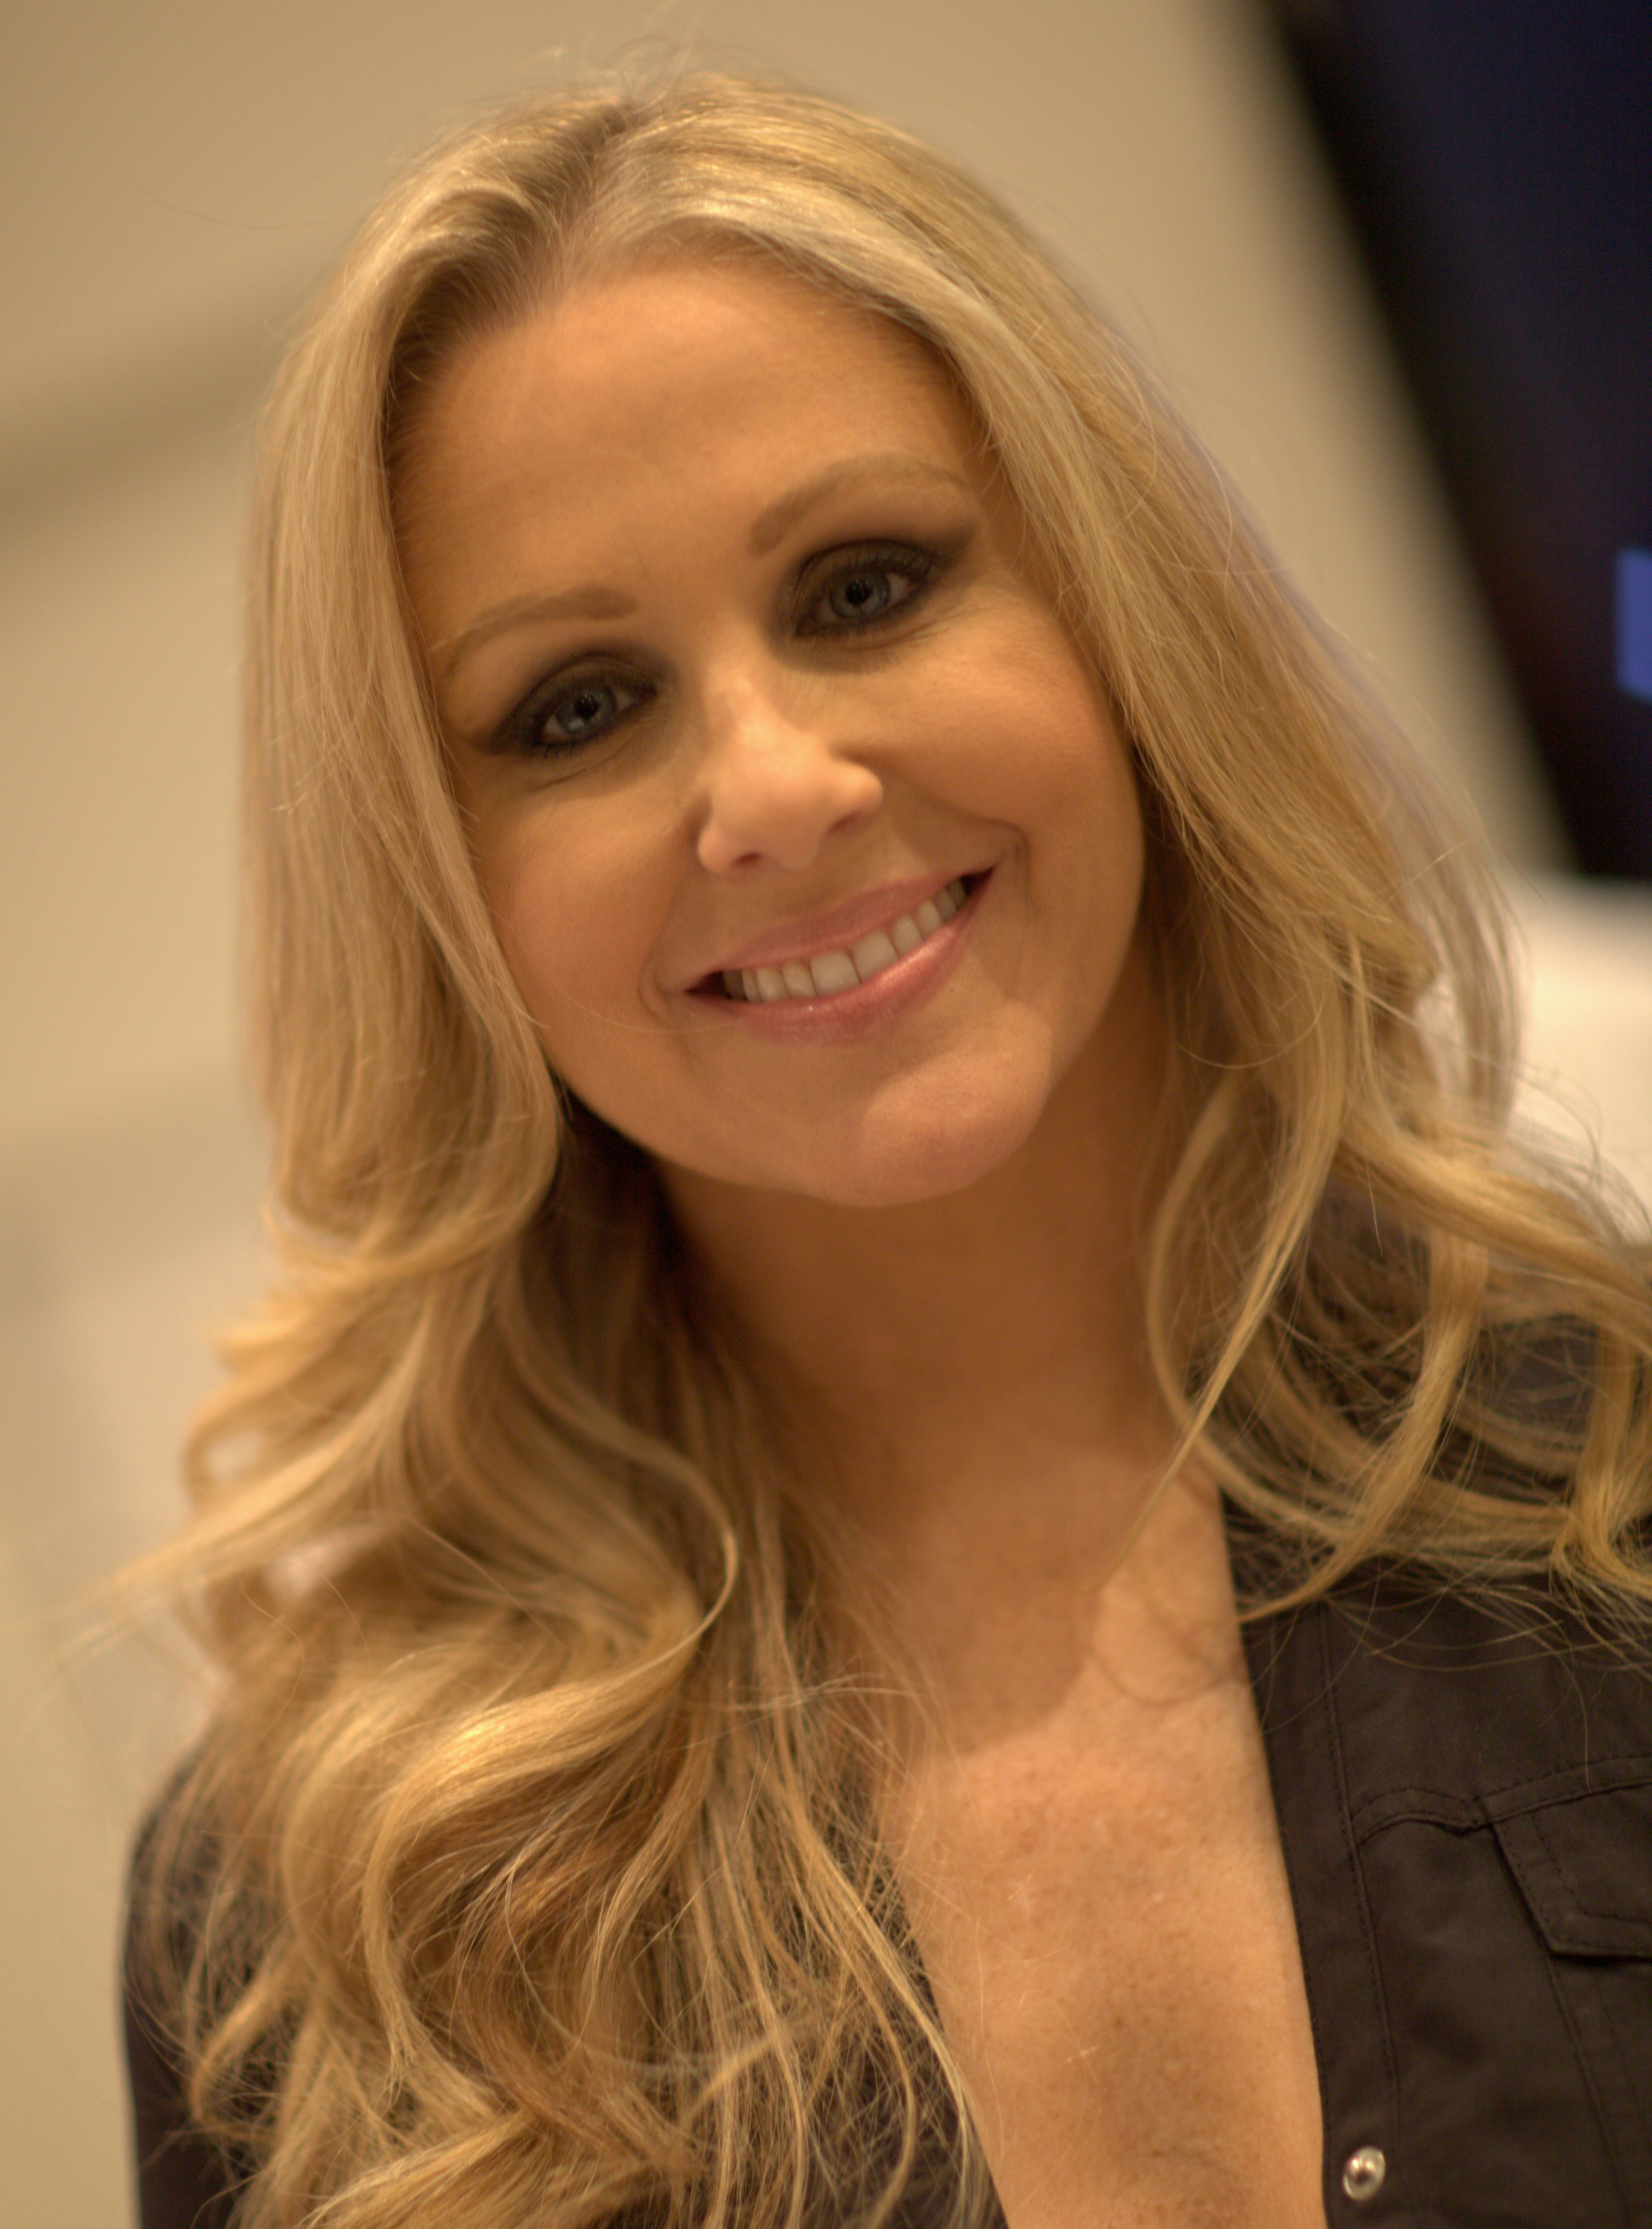 Julia Ann Julia Ann new photo